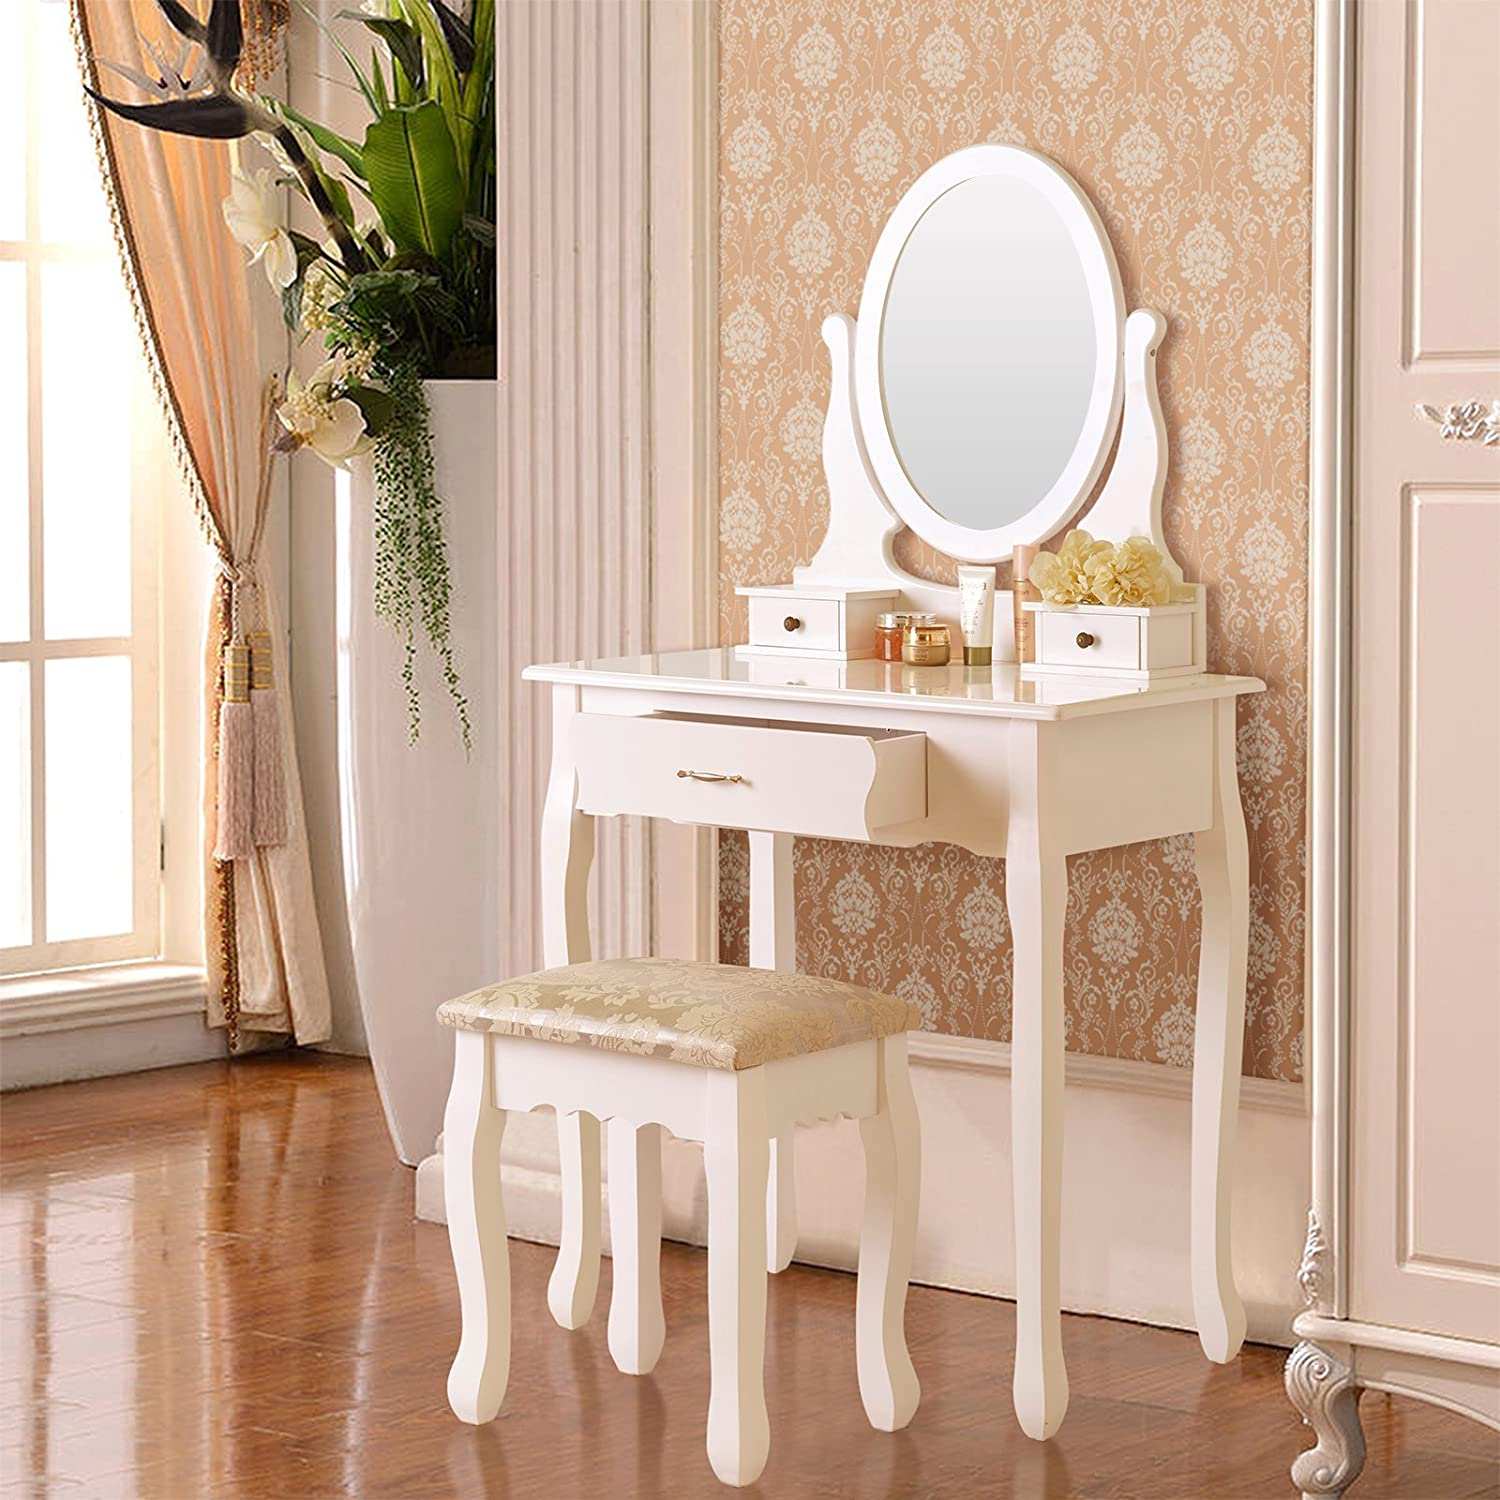 Makeup Table Amazoncom Elegance Vanity Table Set Makeup Desk With Stool 3